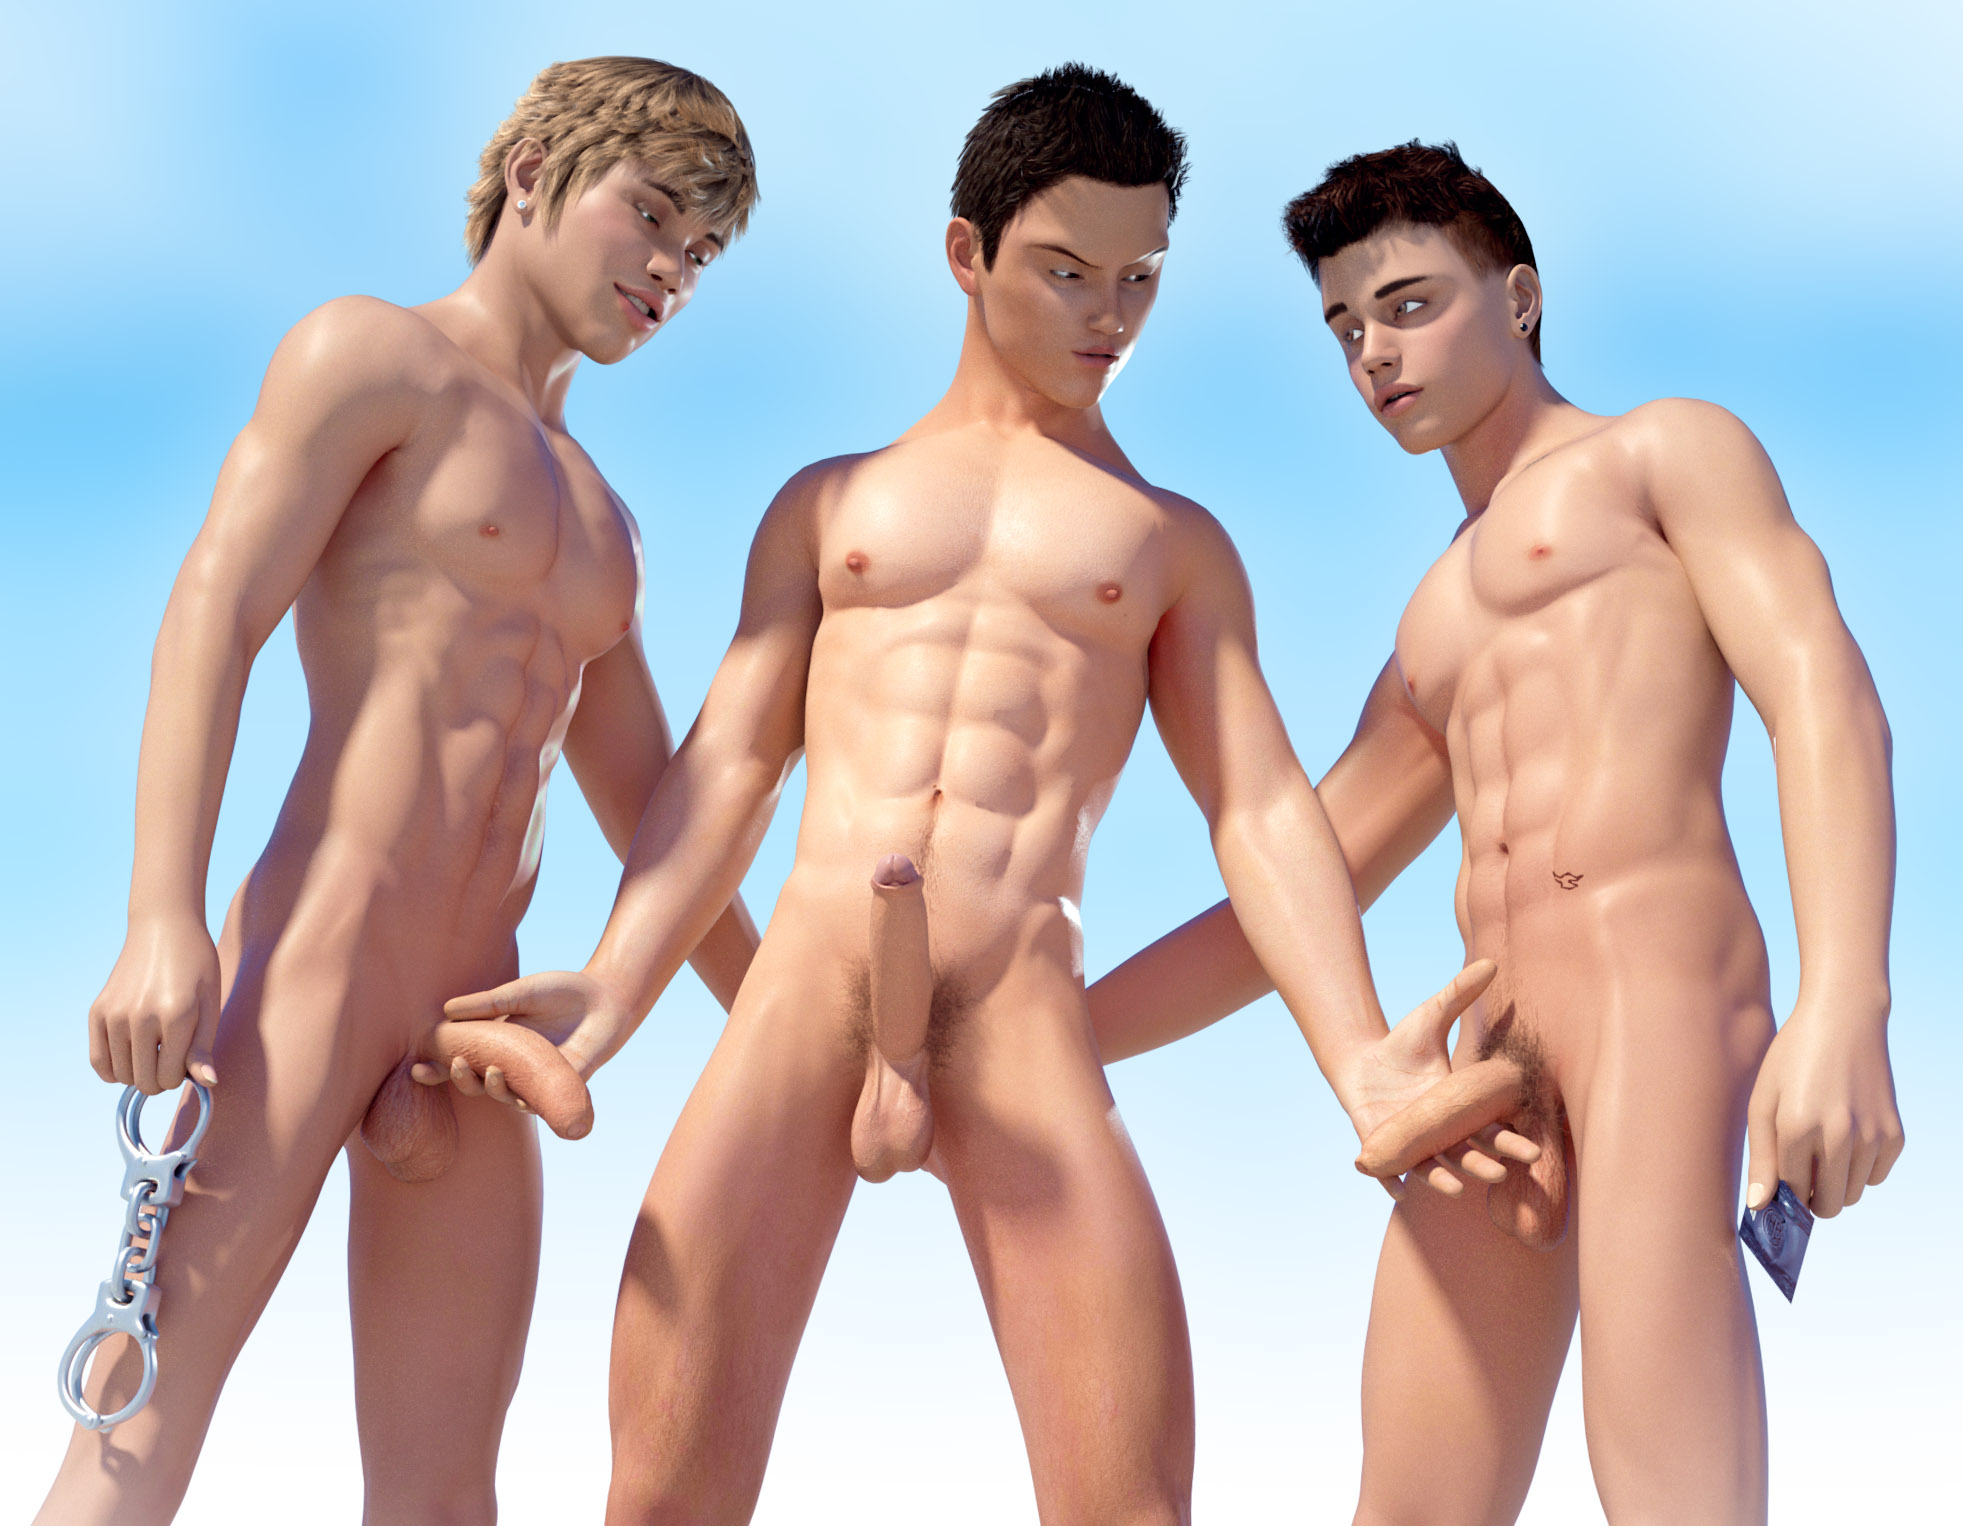 Free gay 3d cartoon download